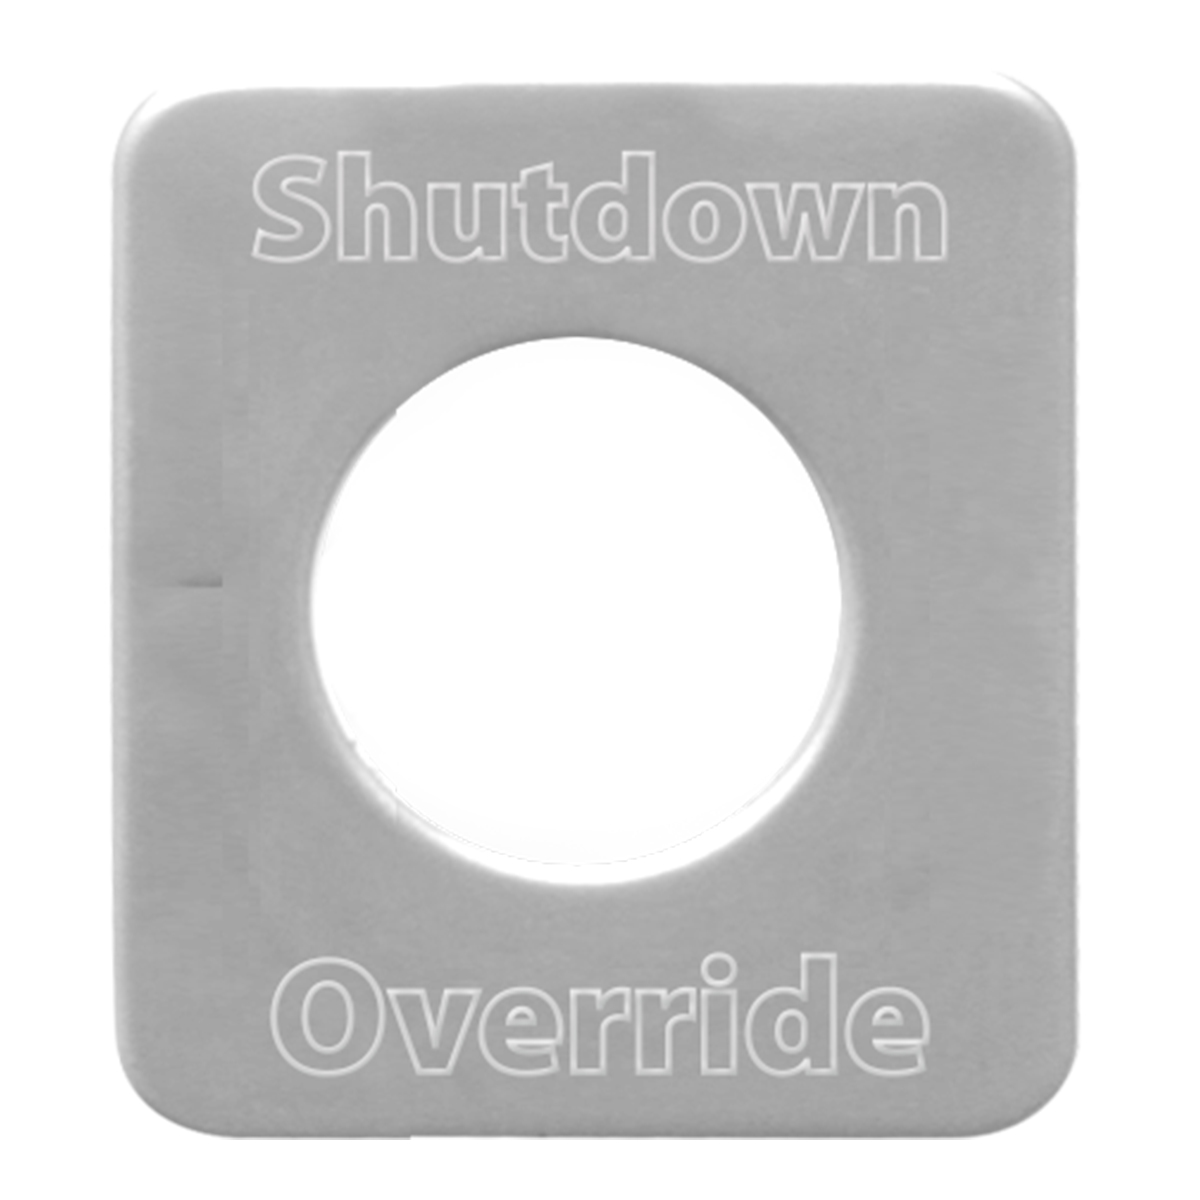 68543 Stainless Steel Shutdown Override Switch Plate for KW